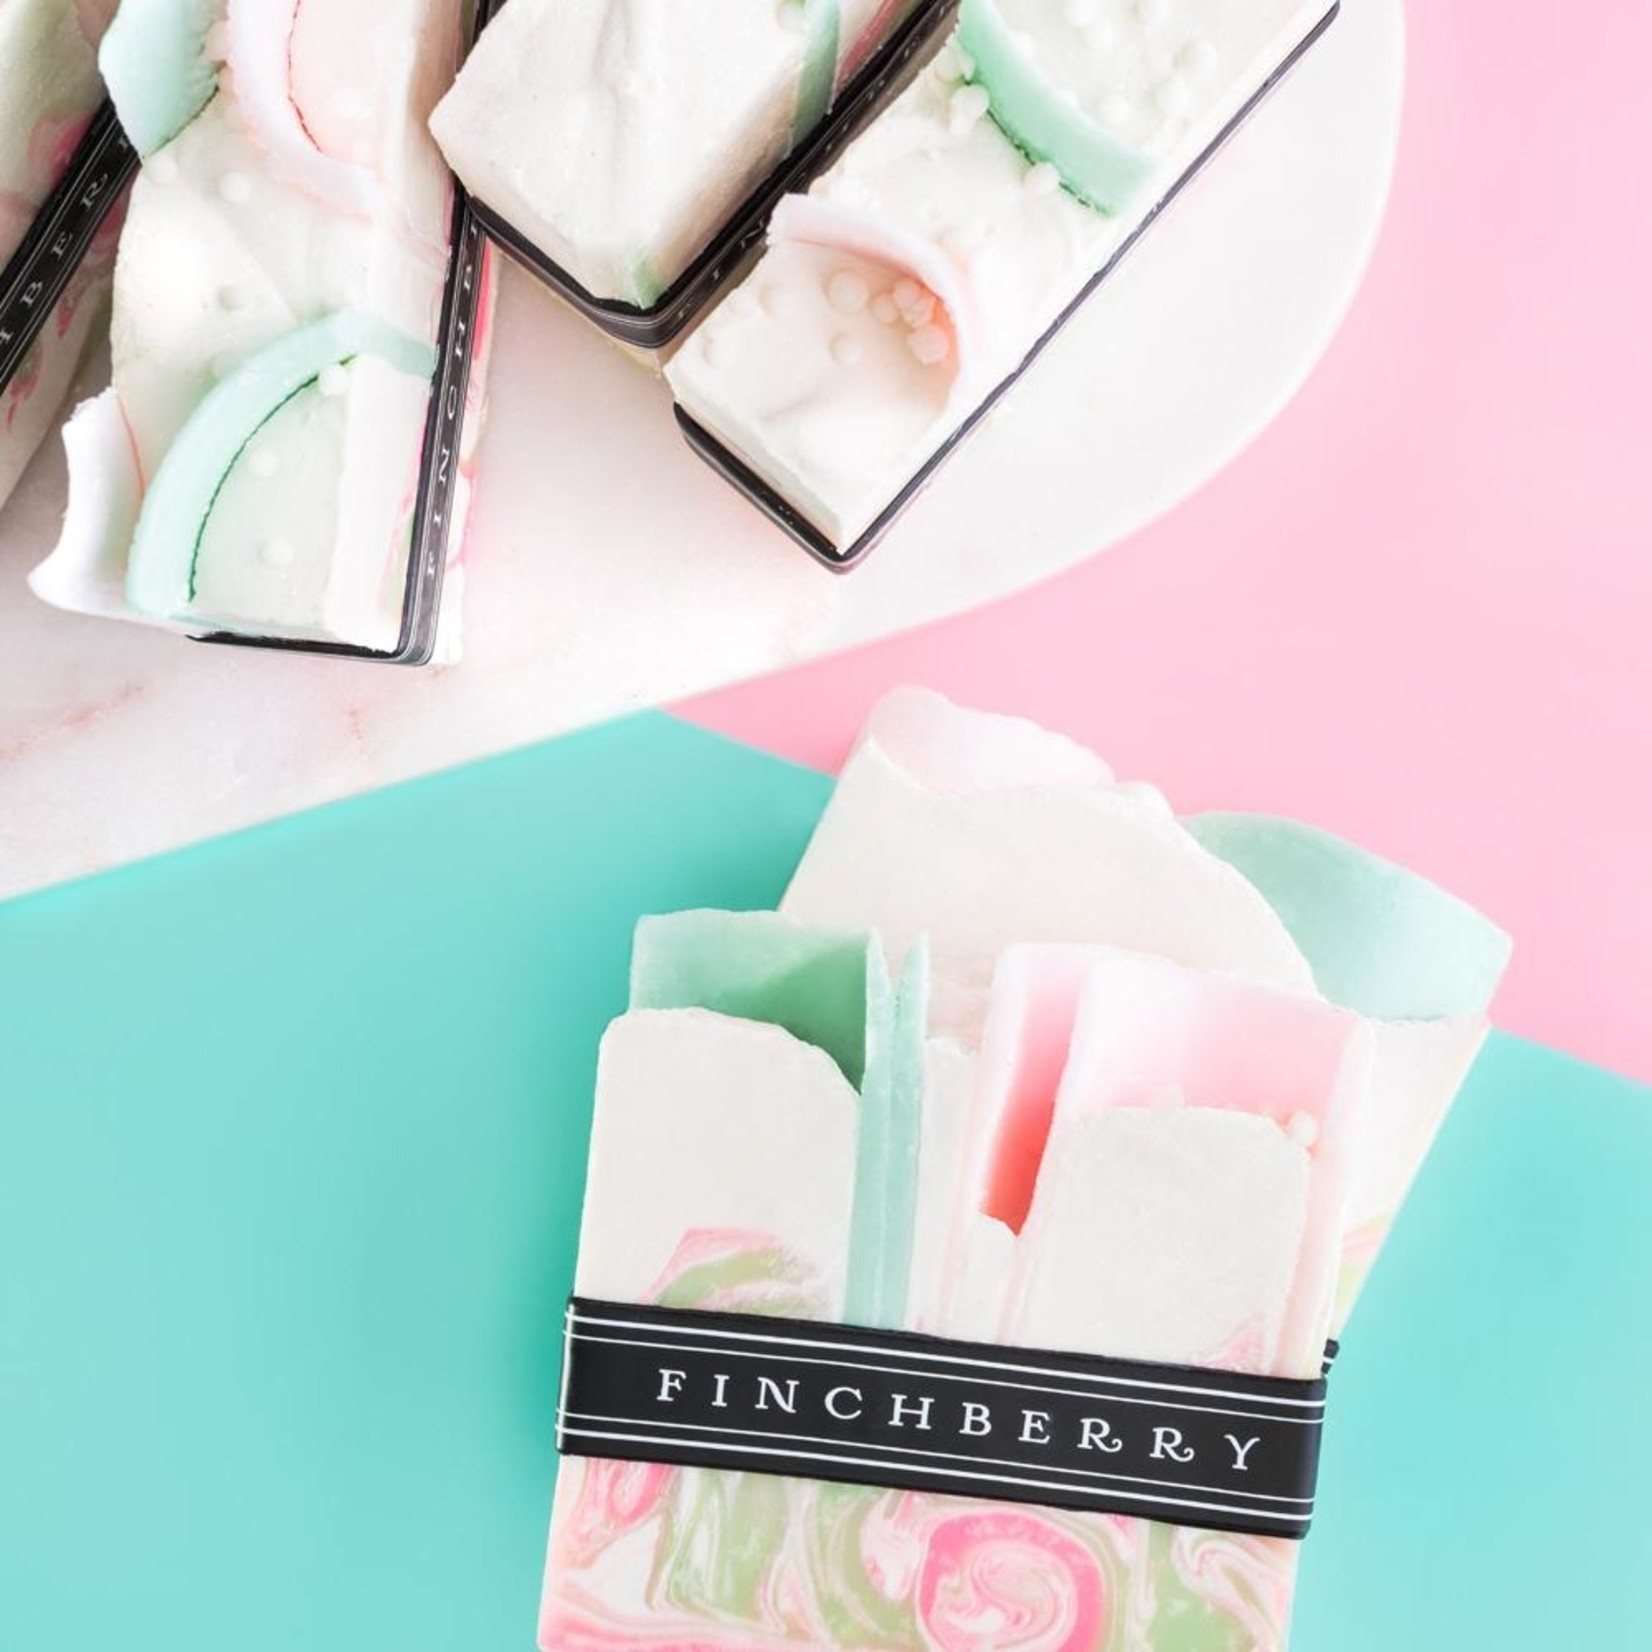 FinchBerry Soapery Sweetly Southern - Handcrafted Vegan Soap